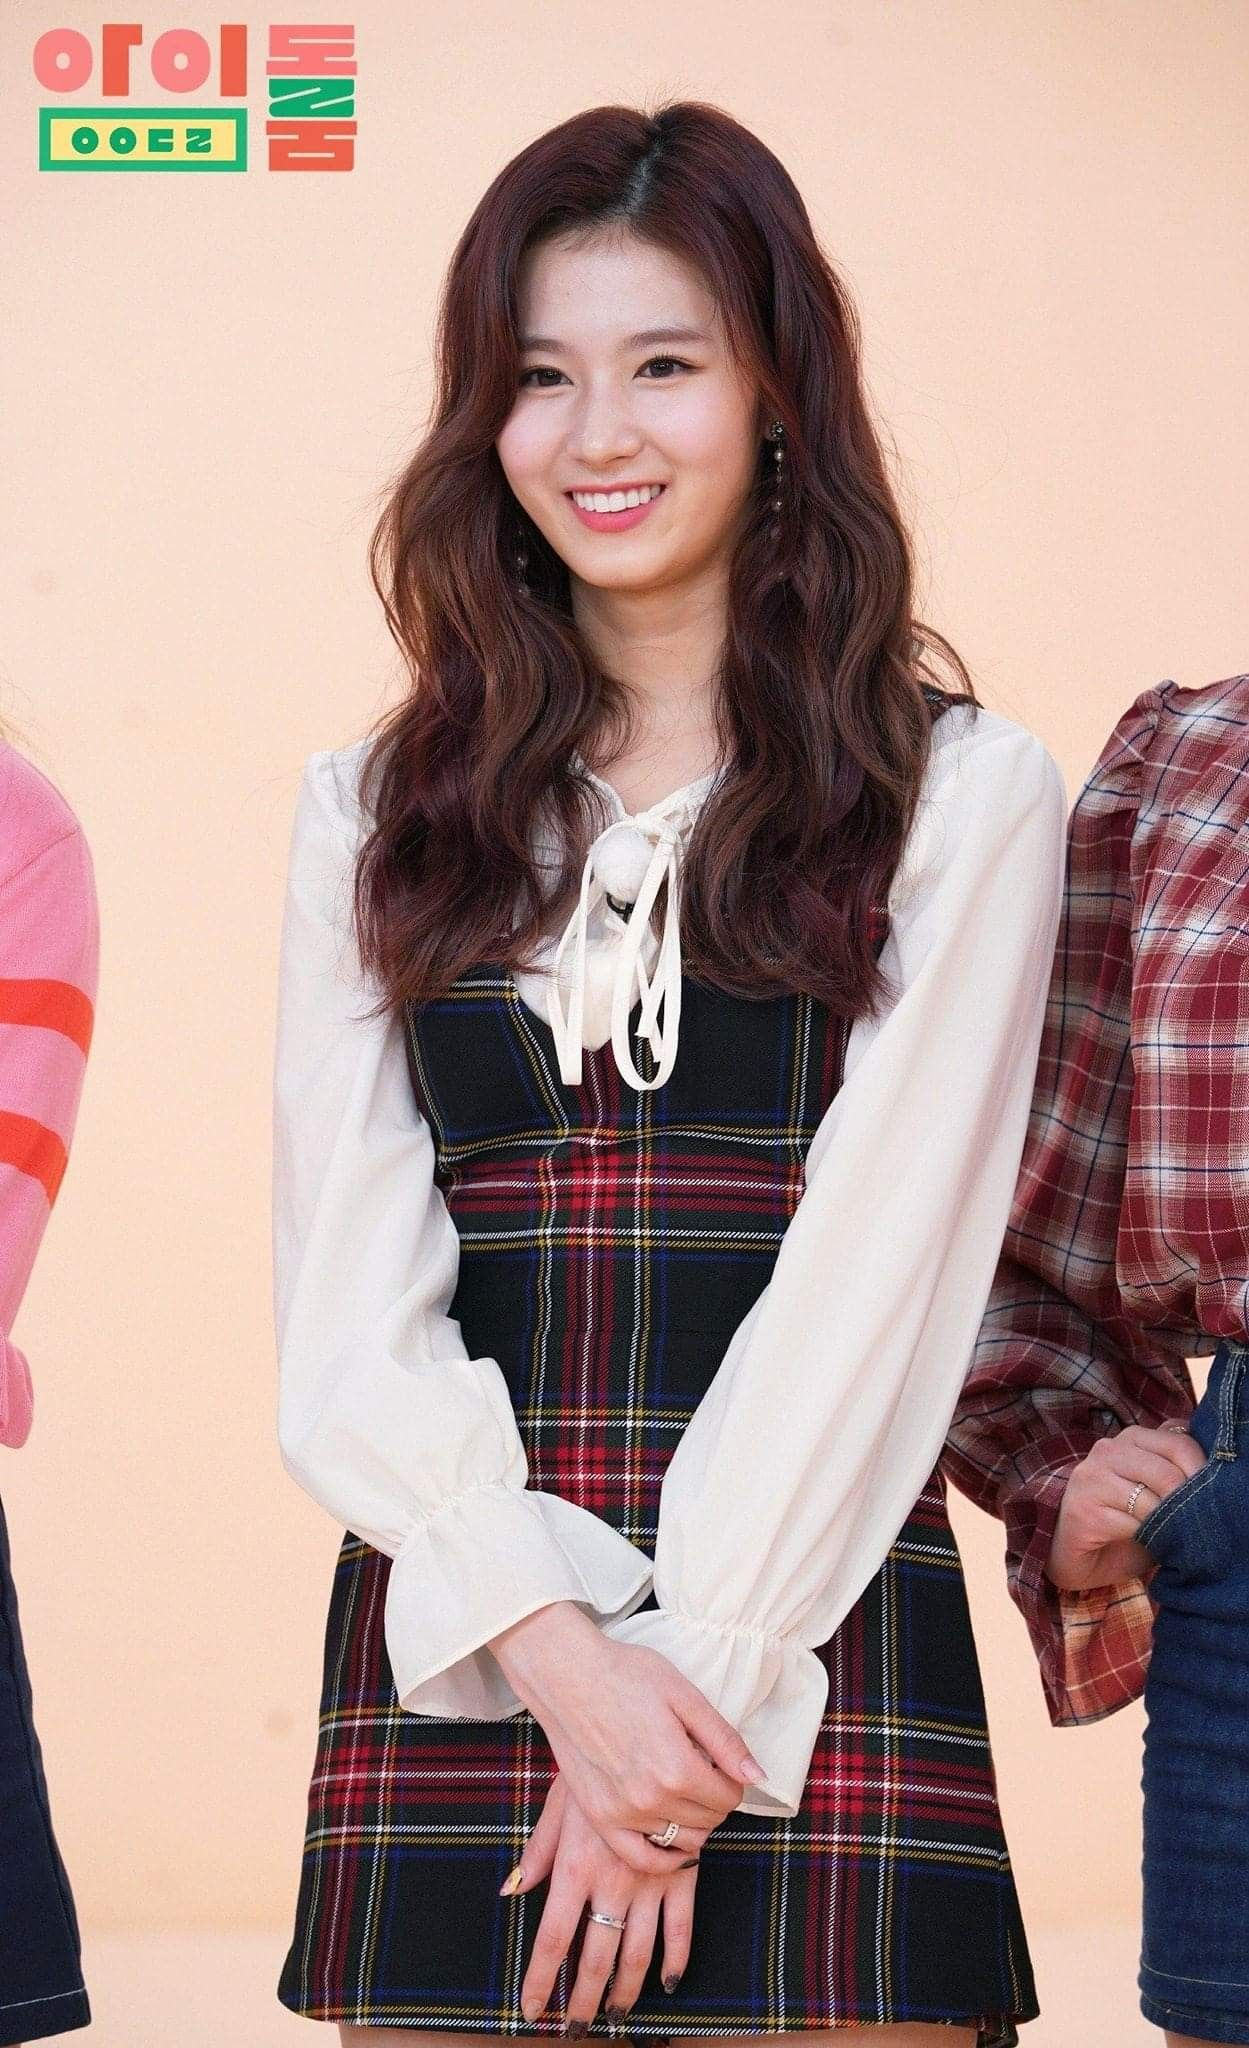 Pin By 1 213 858 7766 On One In A Million Twice Twice Sana Girl Lovely Smile